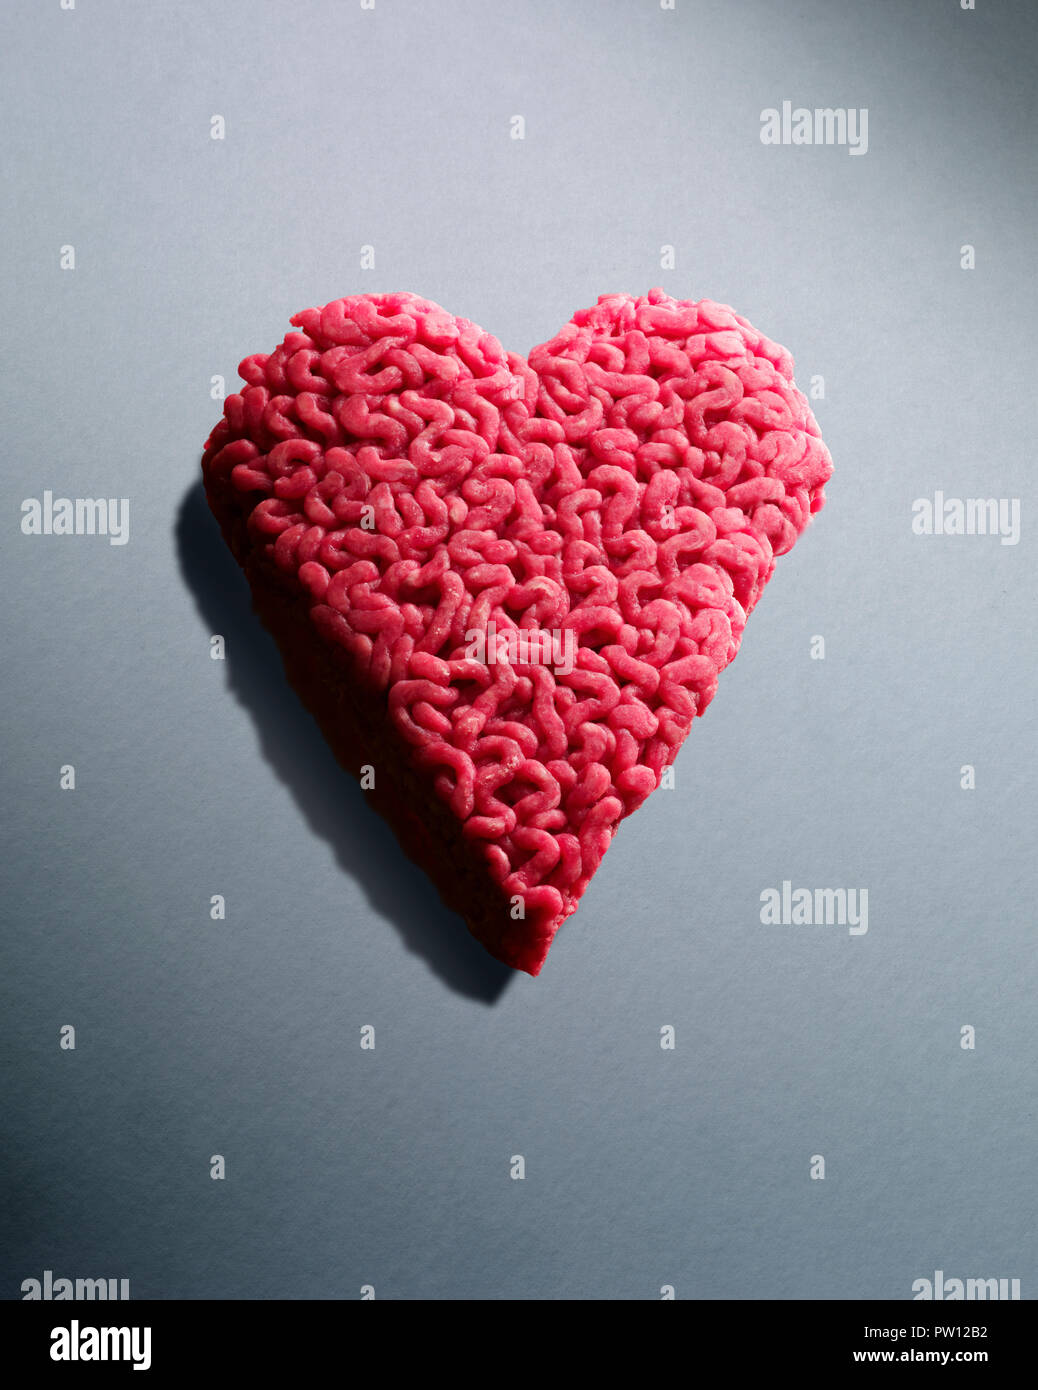 Concept An Heart made of Grounded Meat, Heartbreak, Grounded Heart, Heartache, Bad Relationship - Stock Image